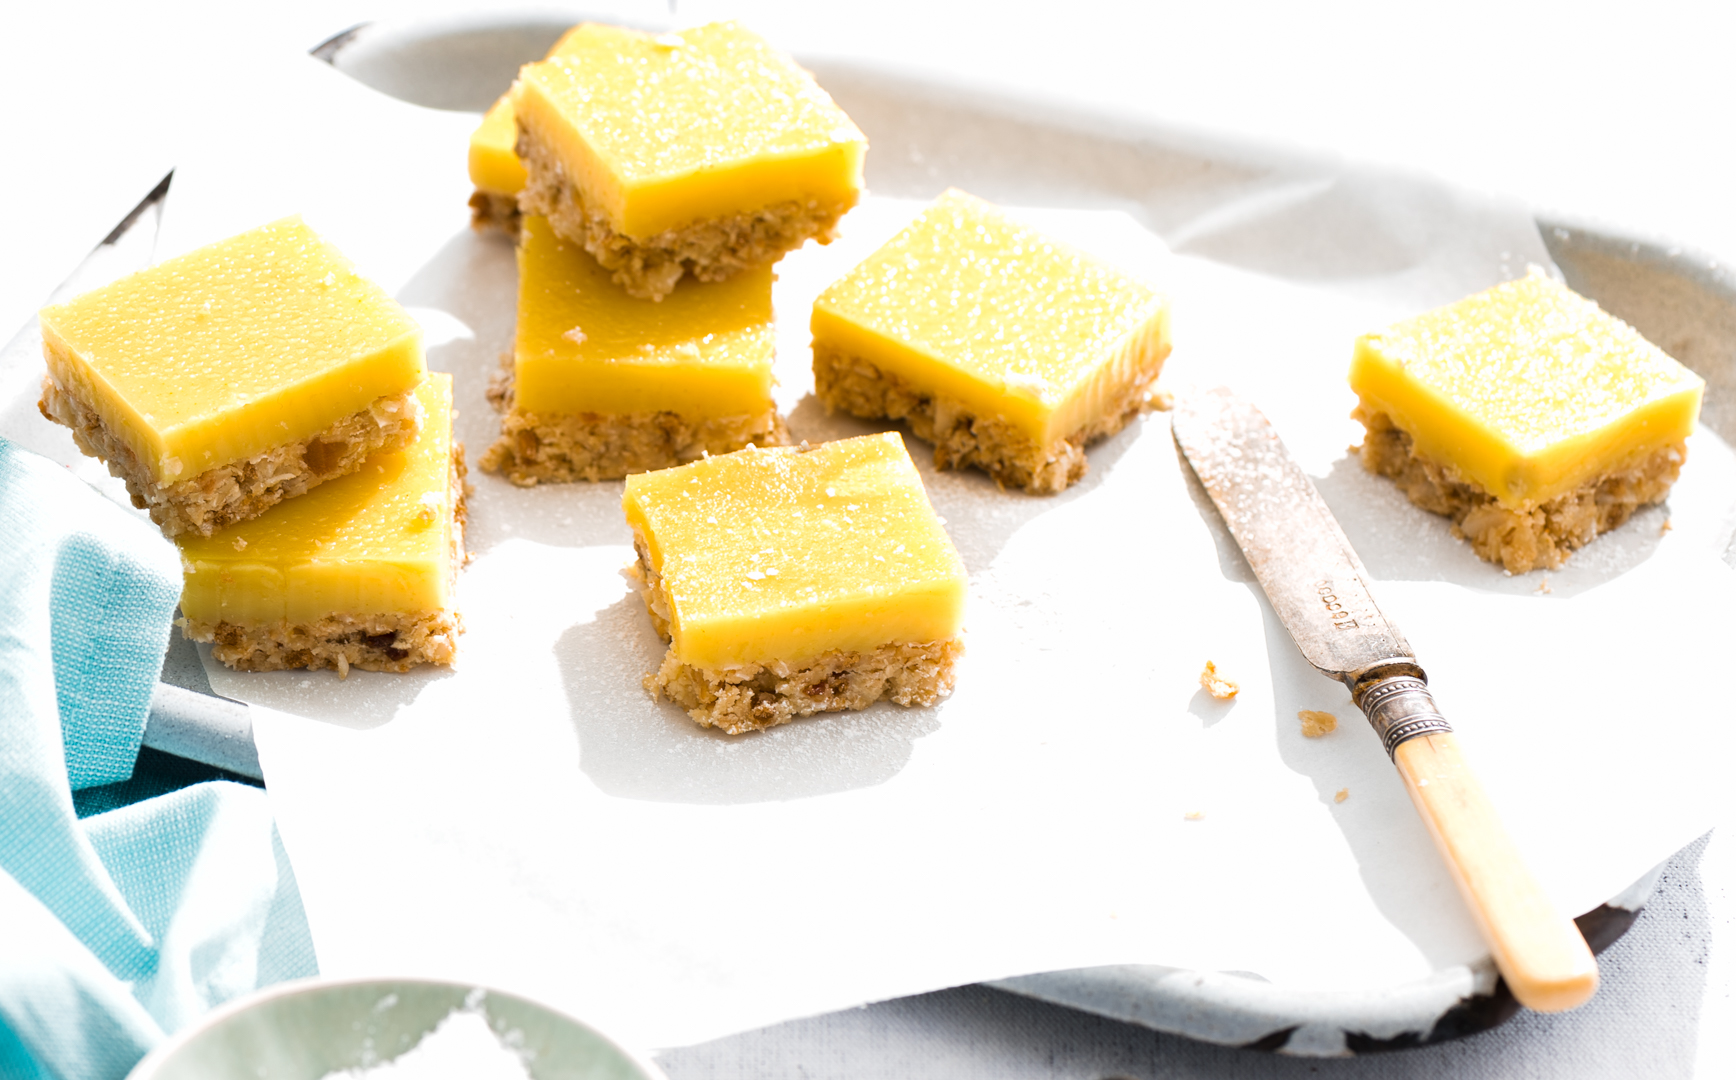 Eggless lemon bars are perfect treats for afternoon tea party. Bursting with lemony flavour and not to mention their amazing texture, hard to resist..